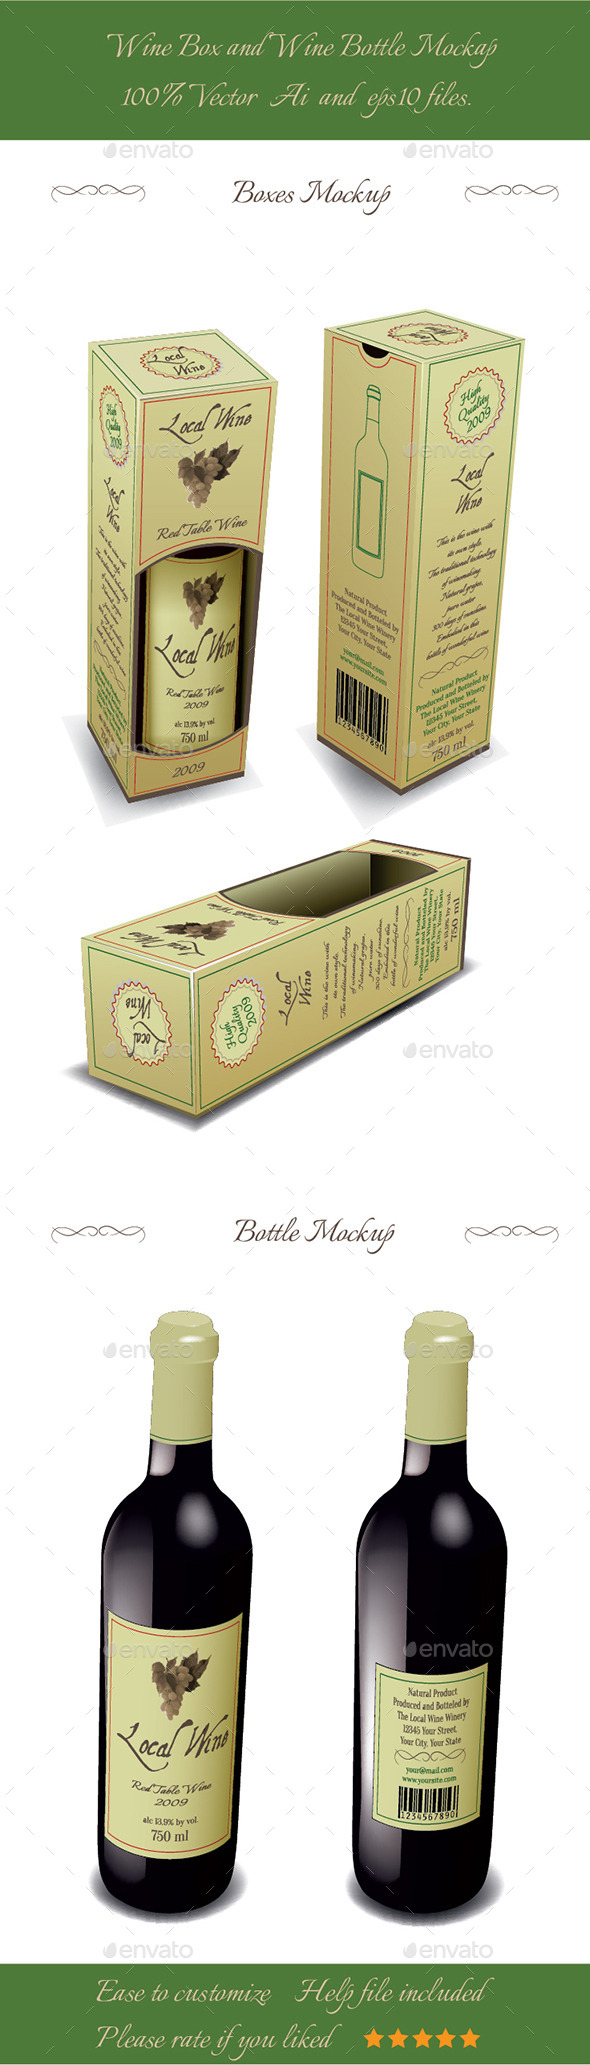 GraphicRiver Wine Box And Wine Bottle Mockup 9192510